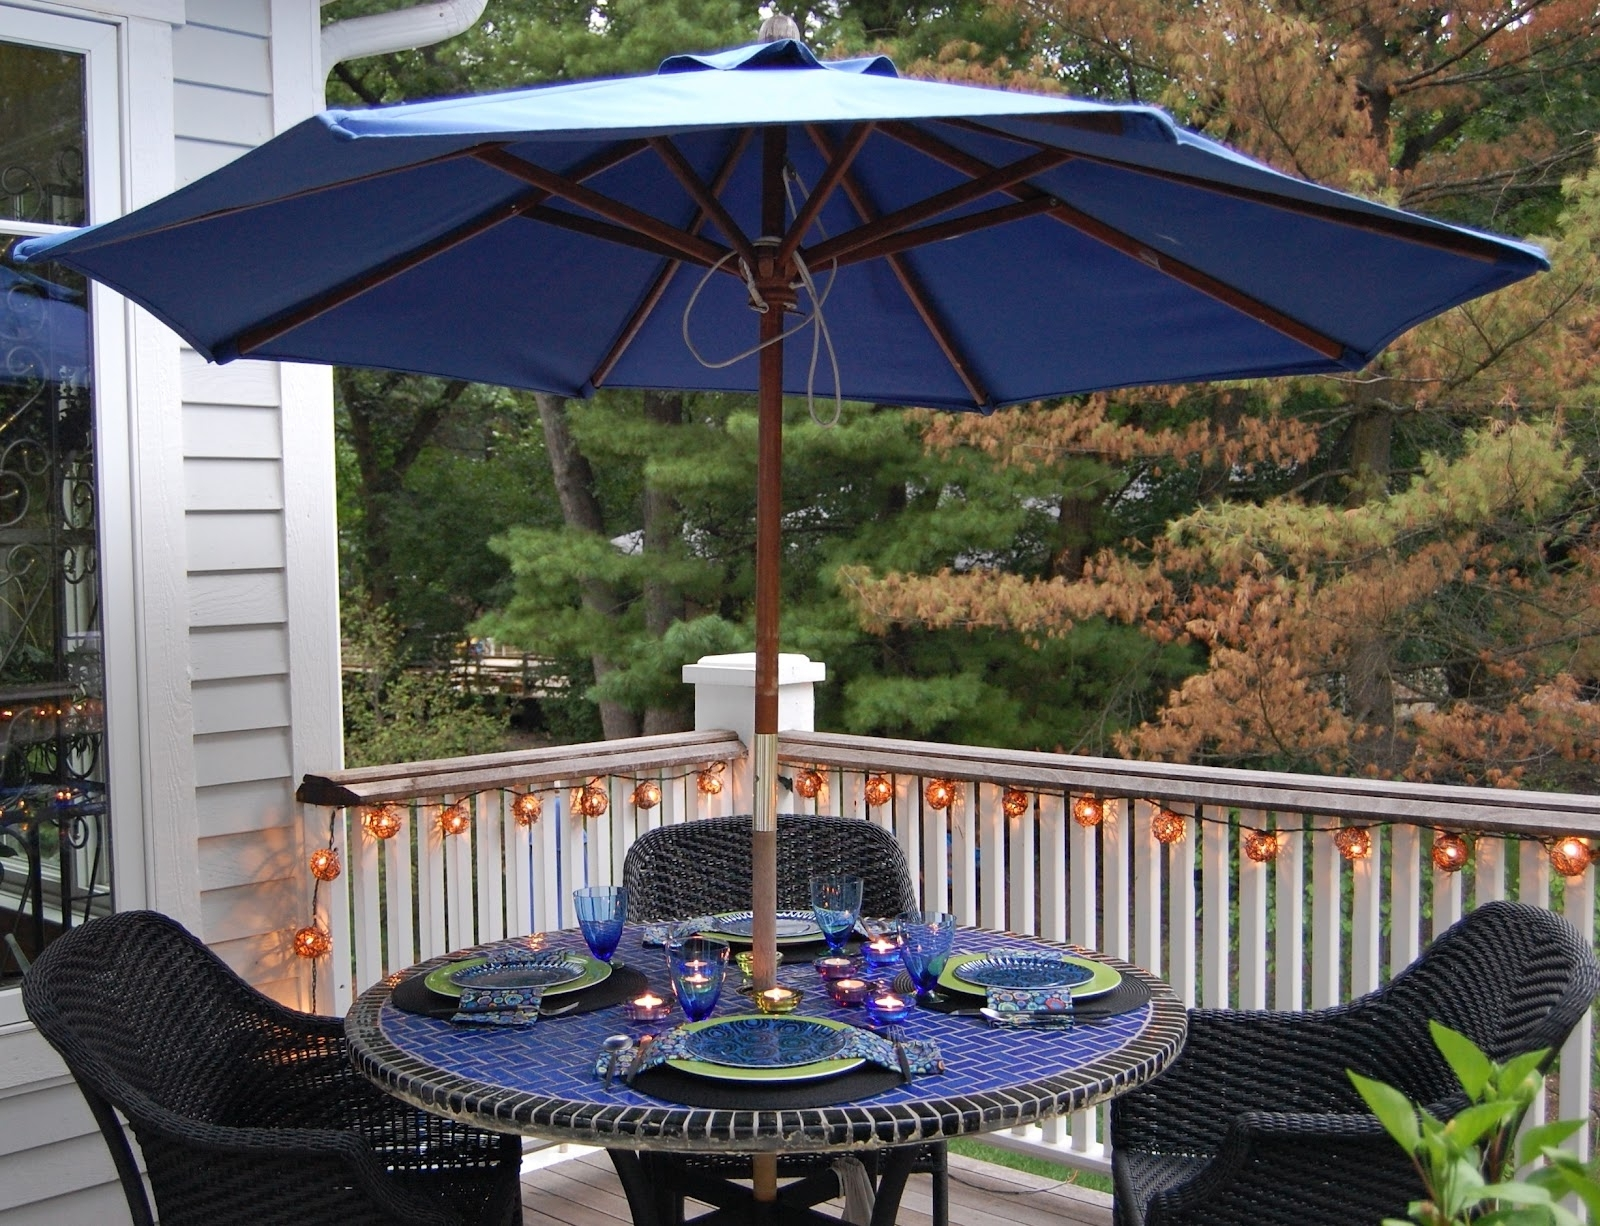 Walmart Patio Umbrellas Intended For Preferred Furniture: Outdoor Outdoor Patio Sets With Umbrella Awesome Design (View 17 of 20)